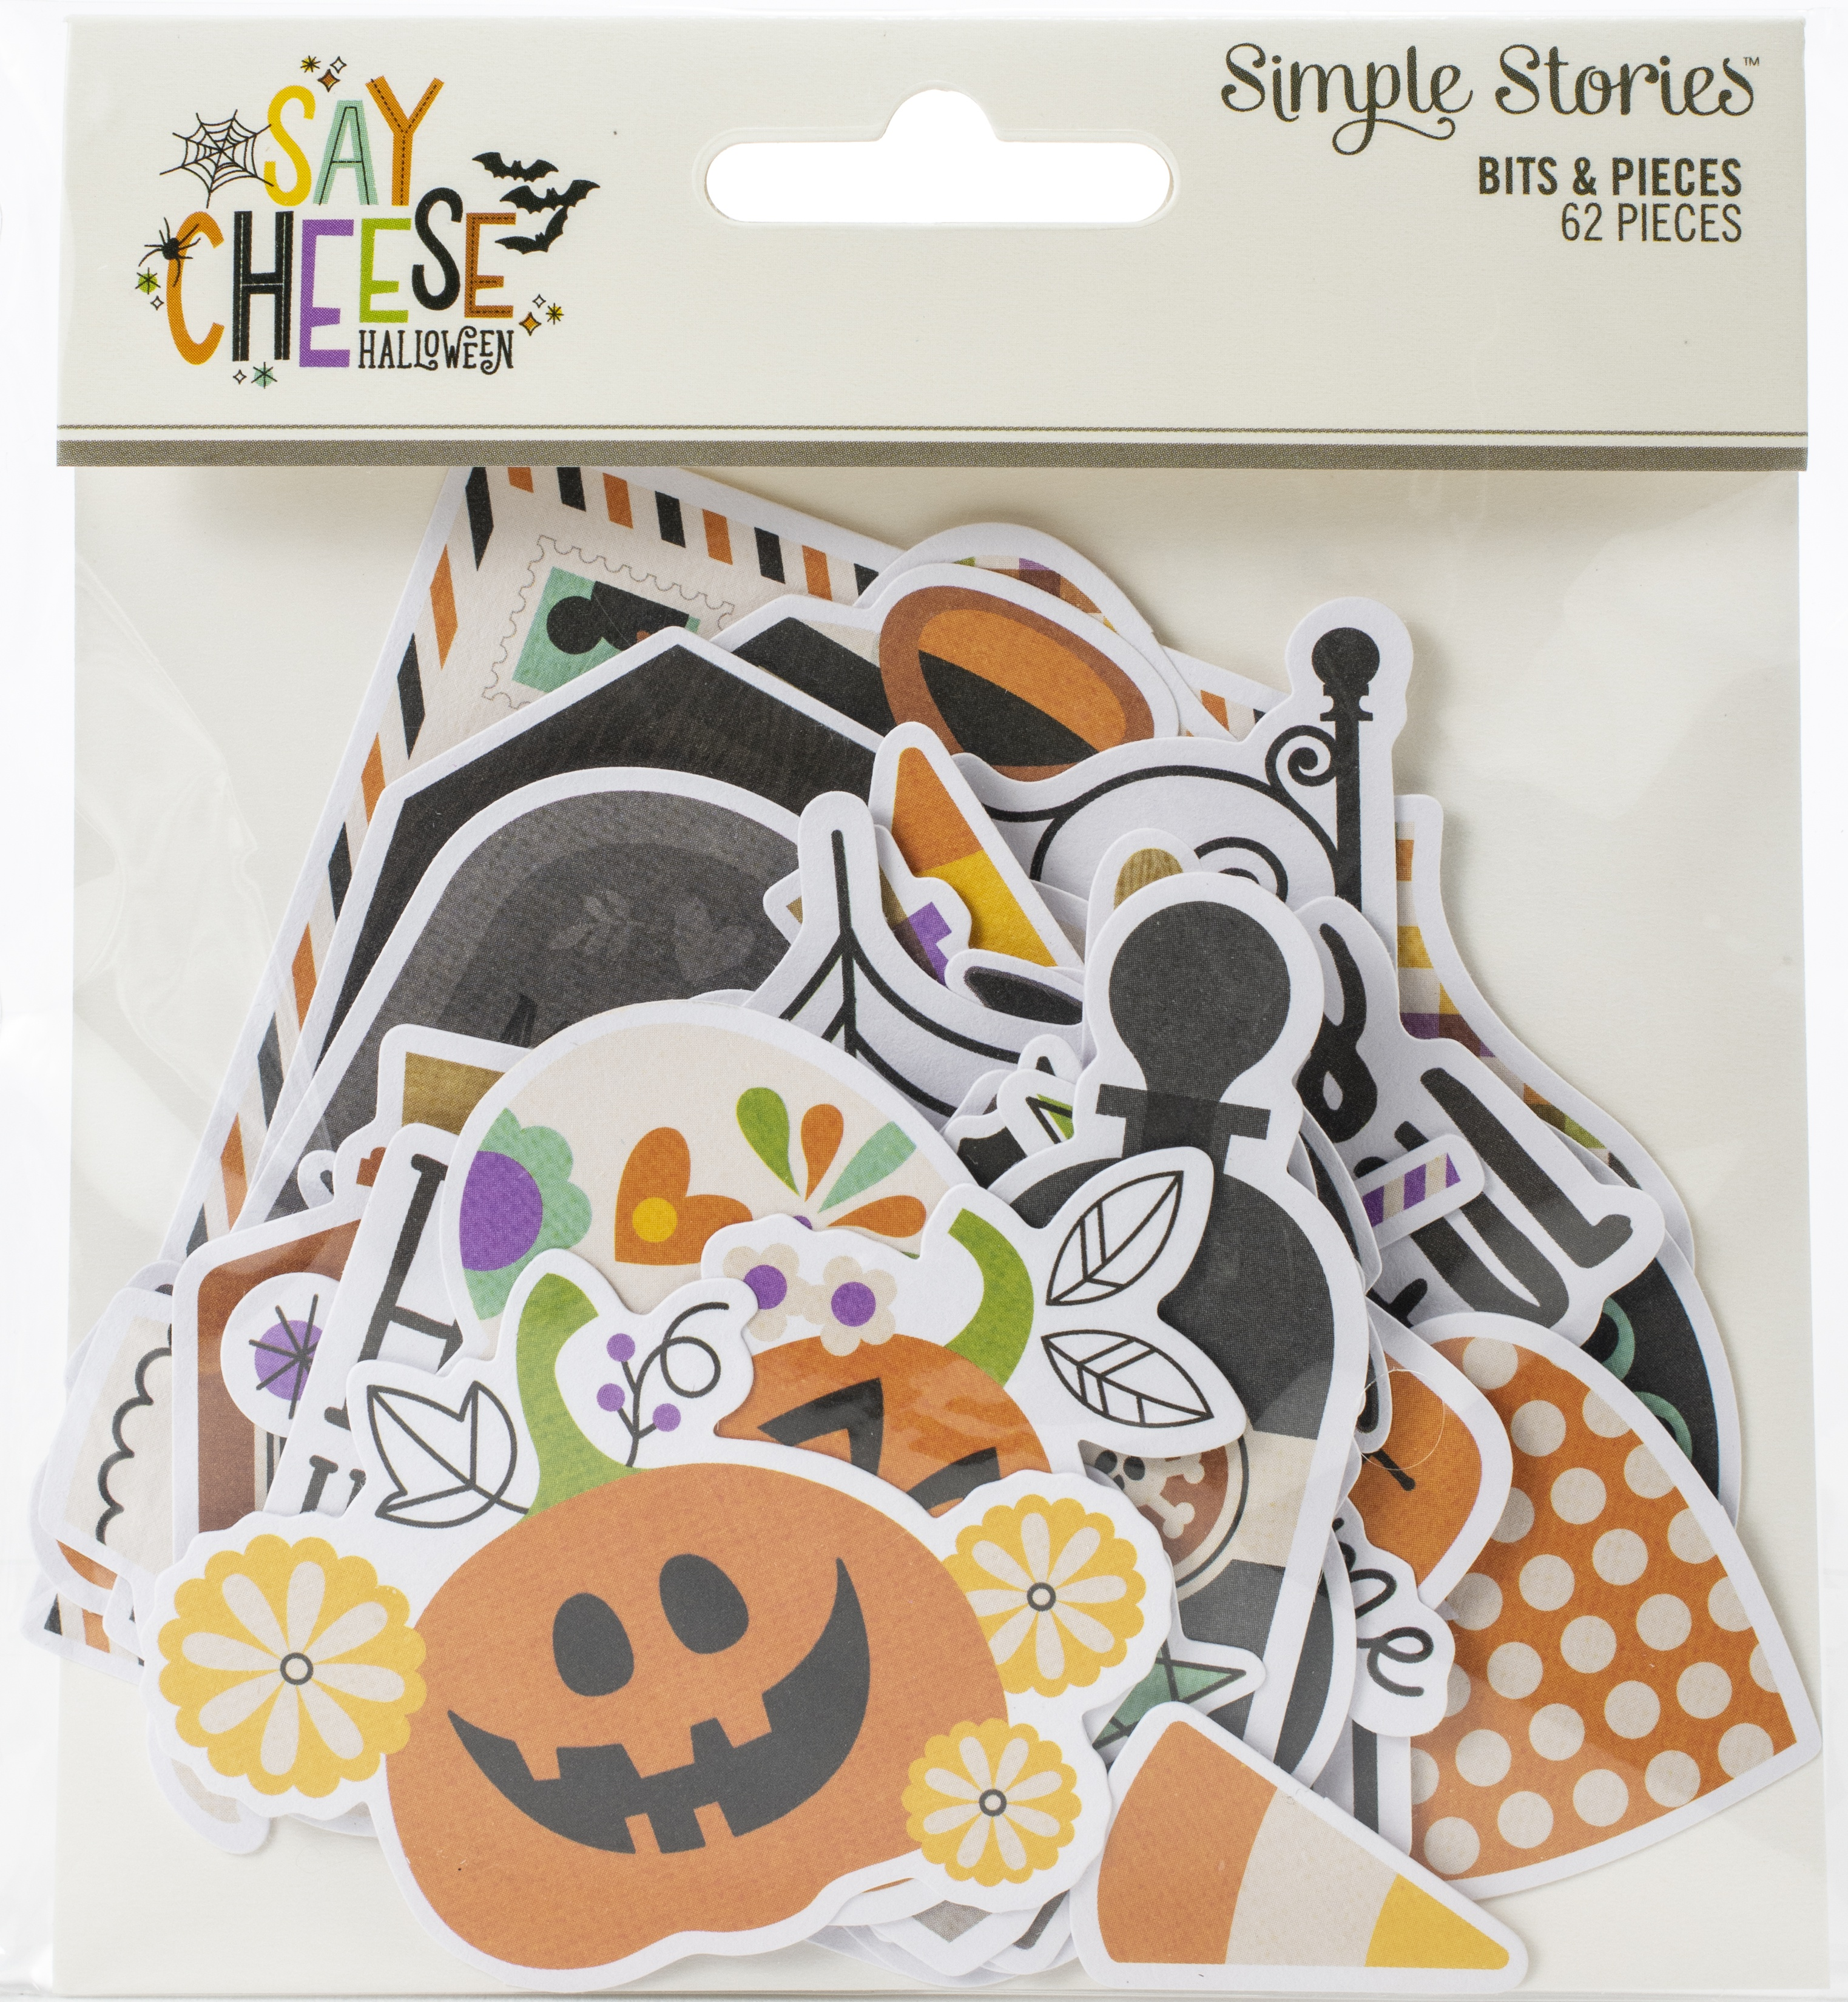 Say Cheese Halloween Bits & Pieces Die-Cuts 62/Pkg-